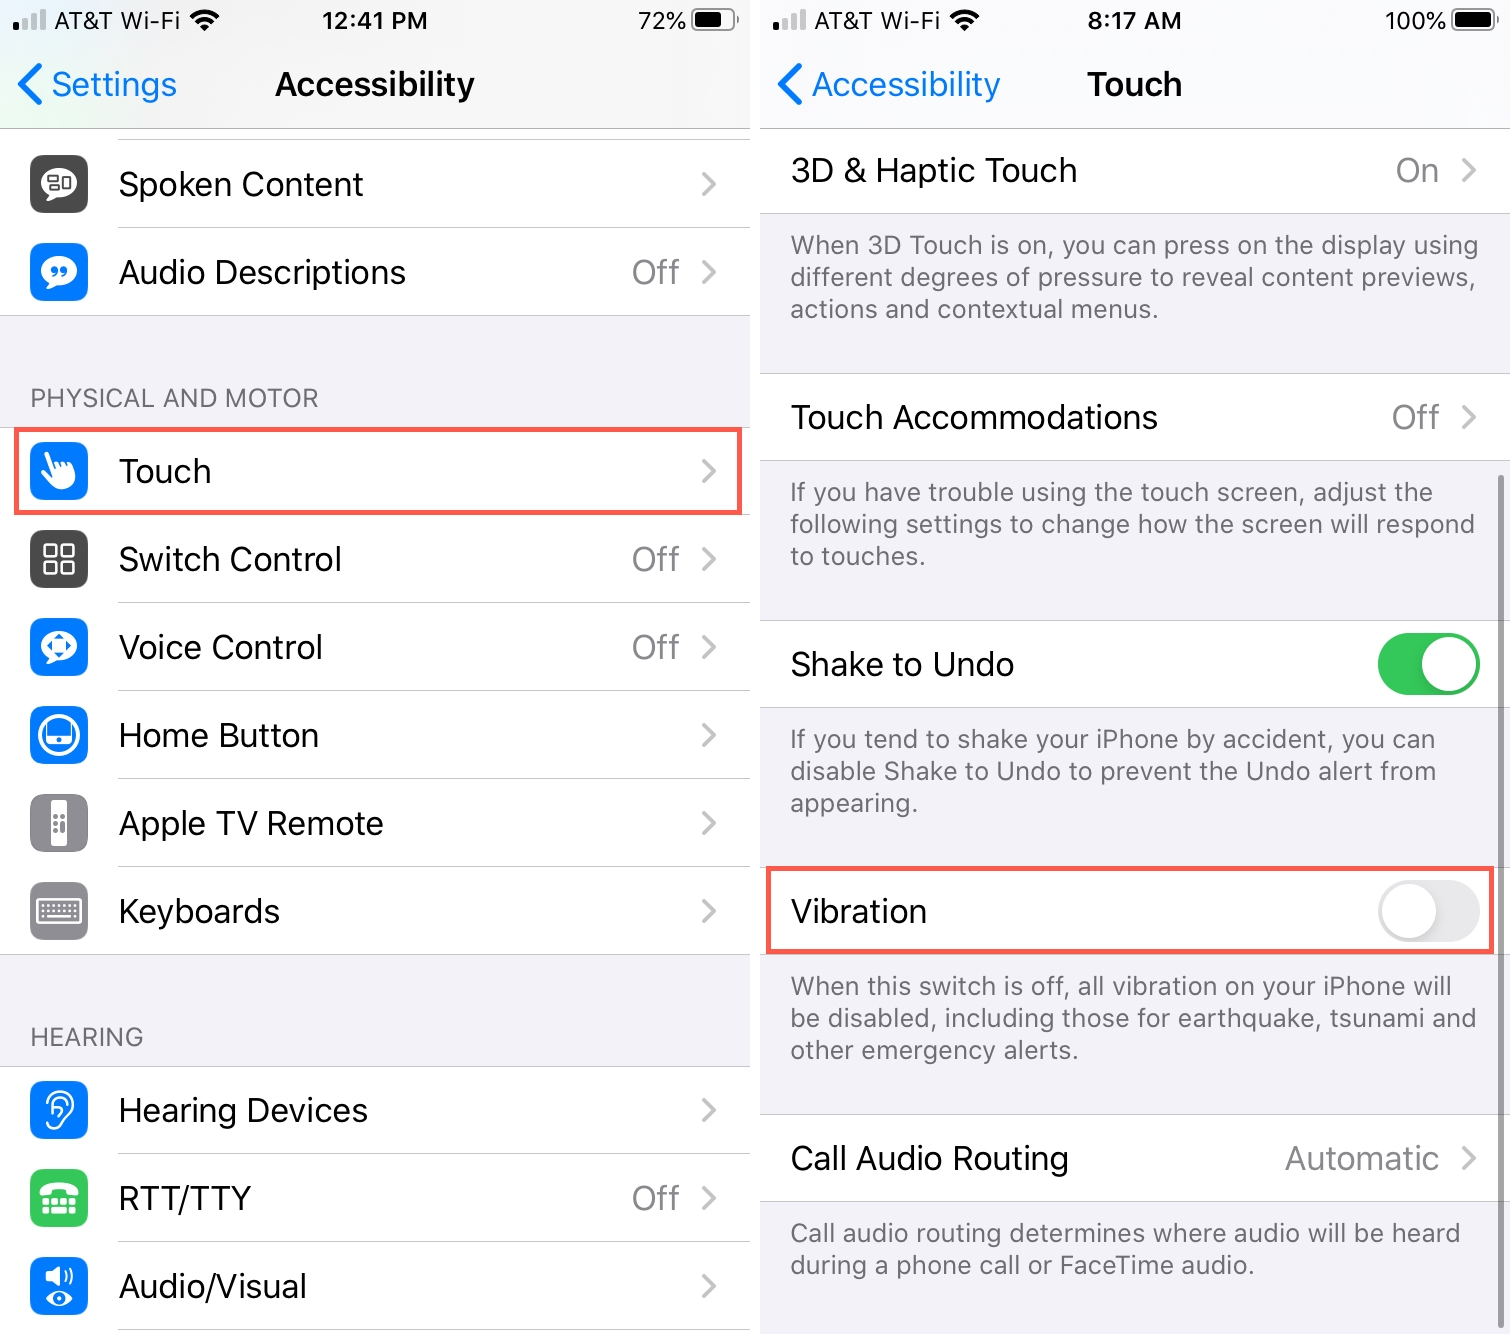 Accessibility Touch Vibration